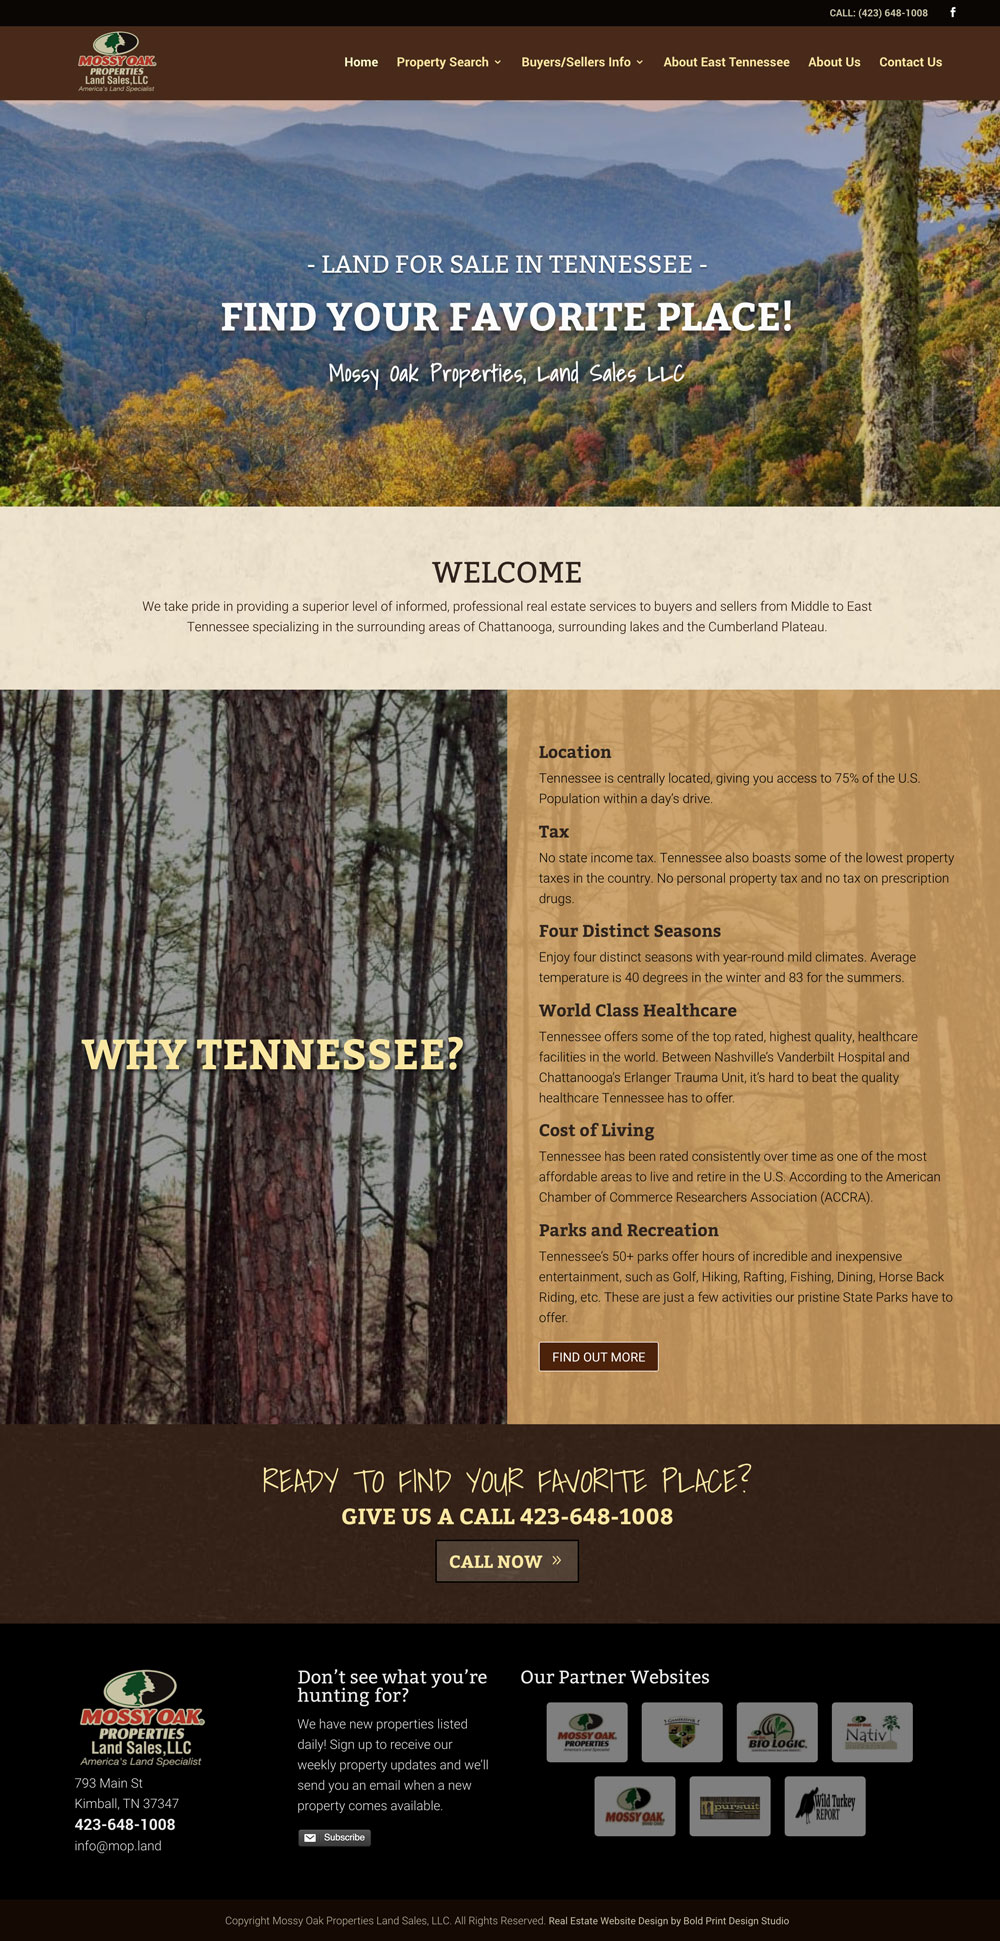 Mossy Oak Properties Land Sales Website